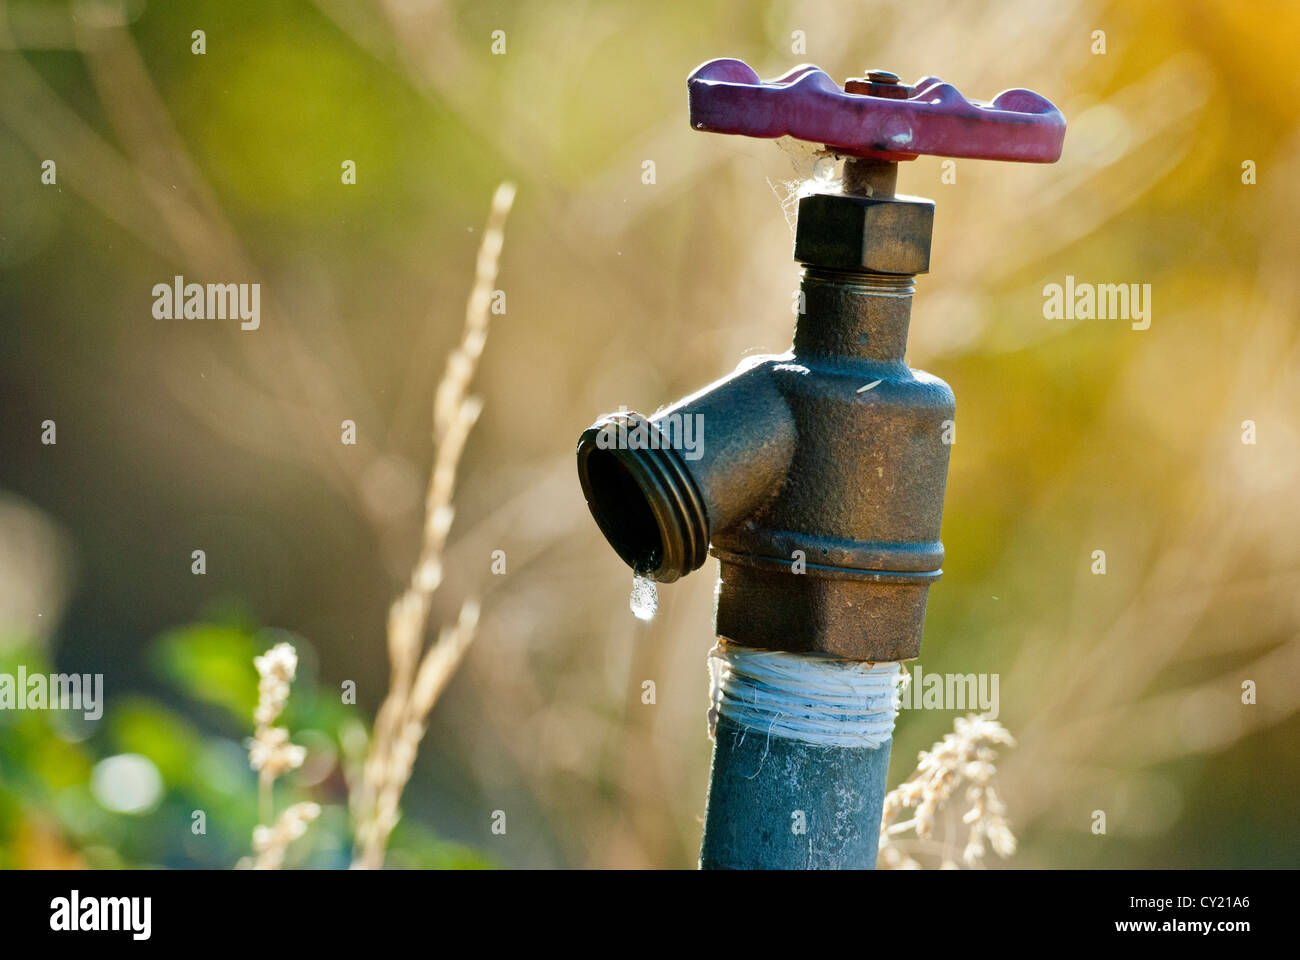 Spigot with water drop - Stock Image